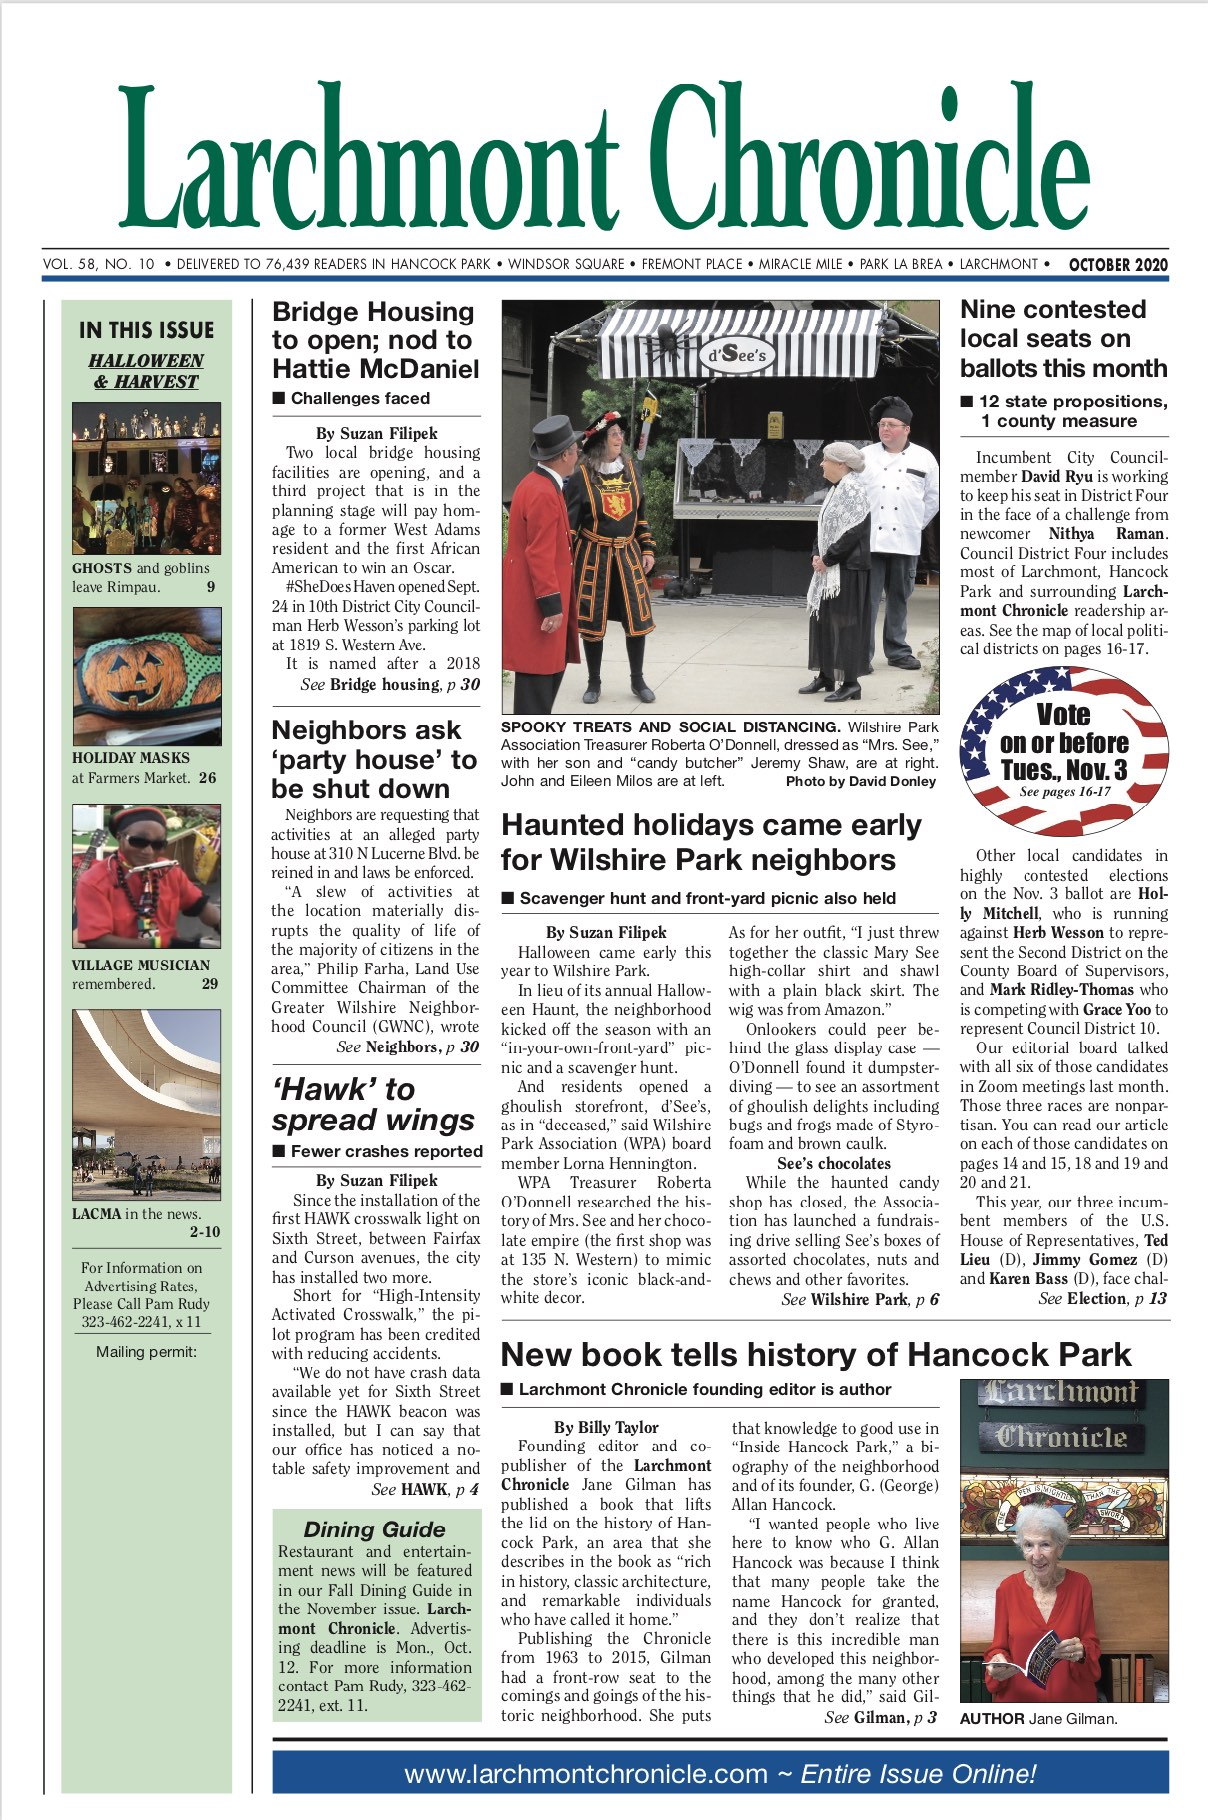 Larchmont Chronicle October 2020 full issue